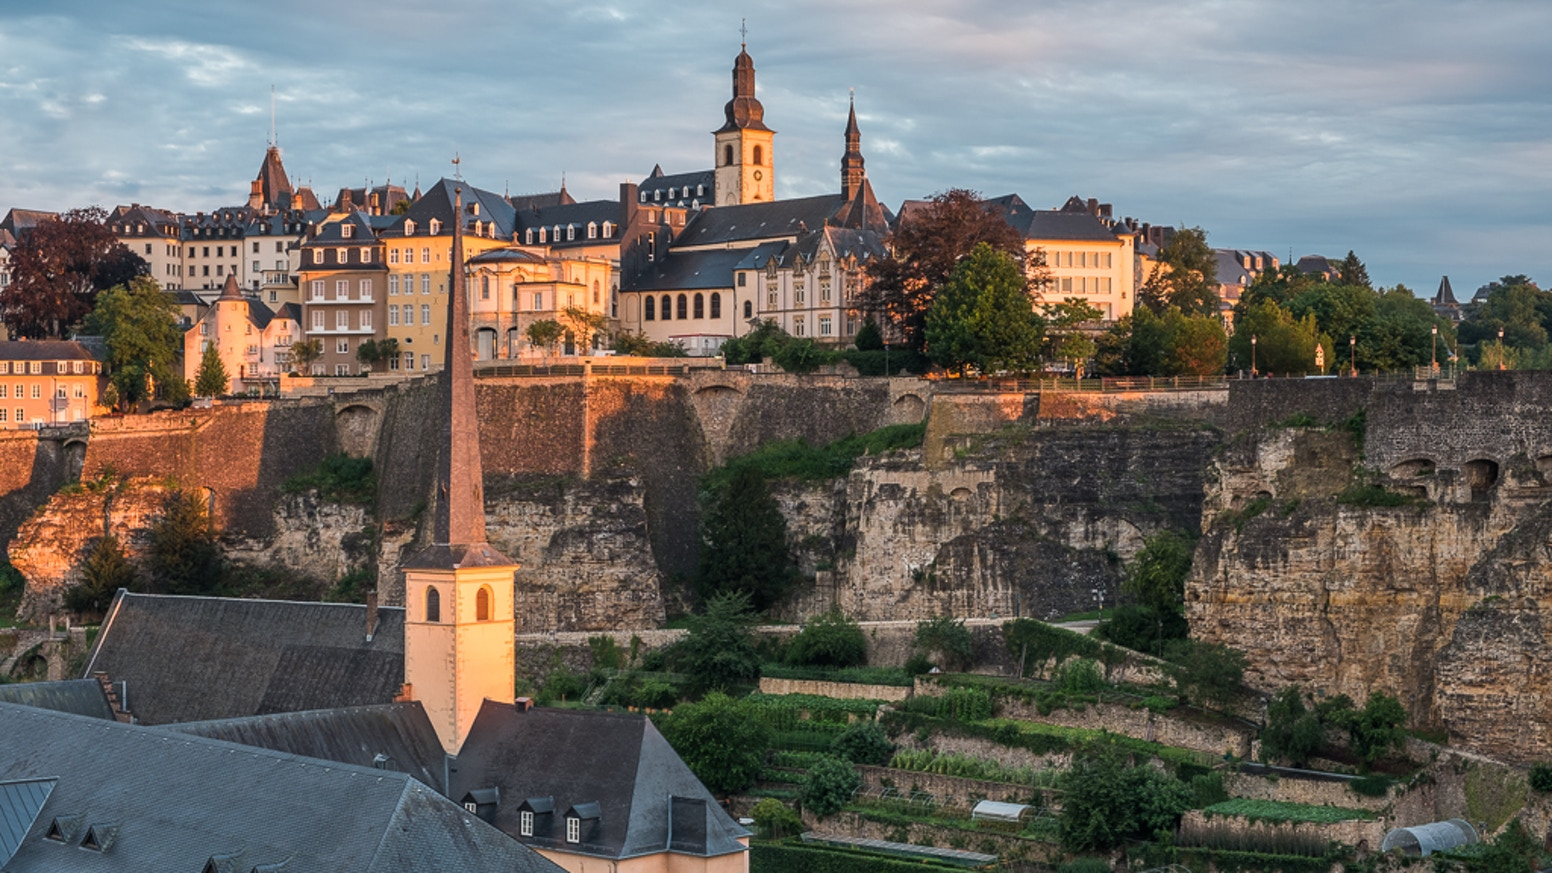 A calendar for 2018 and new postcards with unique landscape pictures of Luxembourg made by local artist Christophe Van Biesen